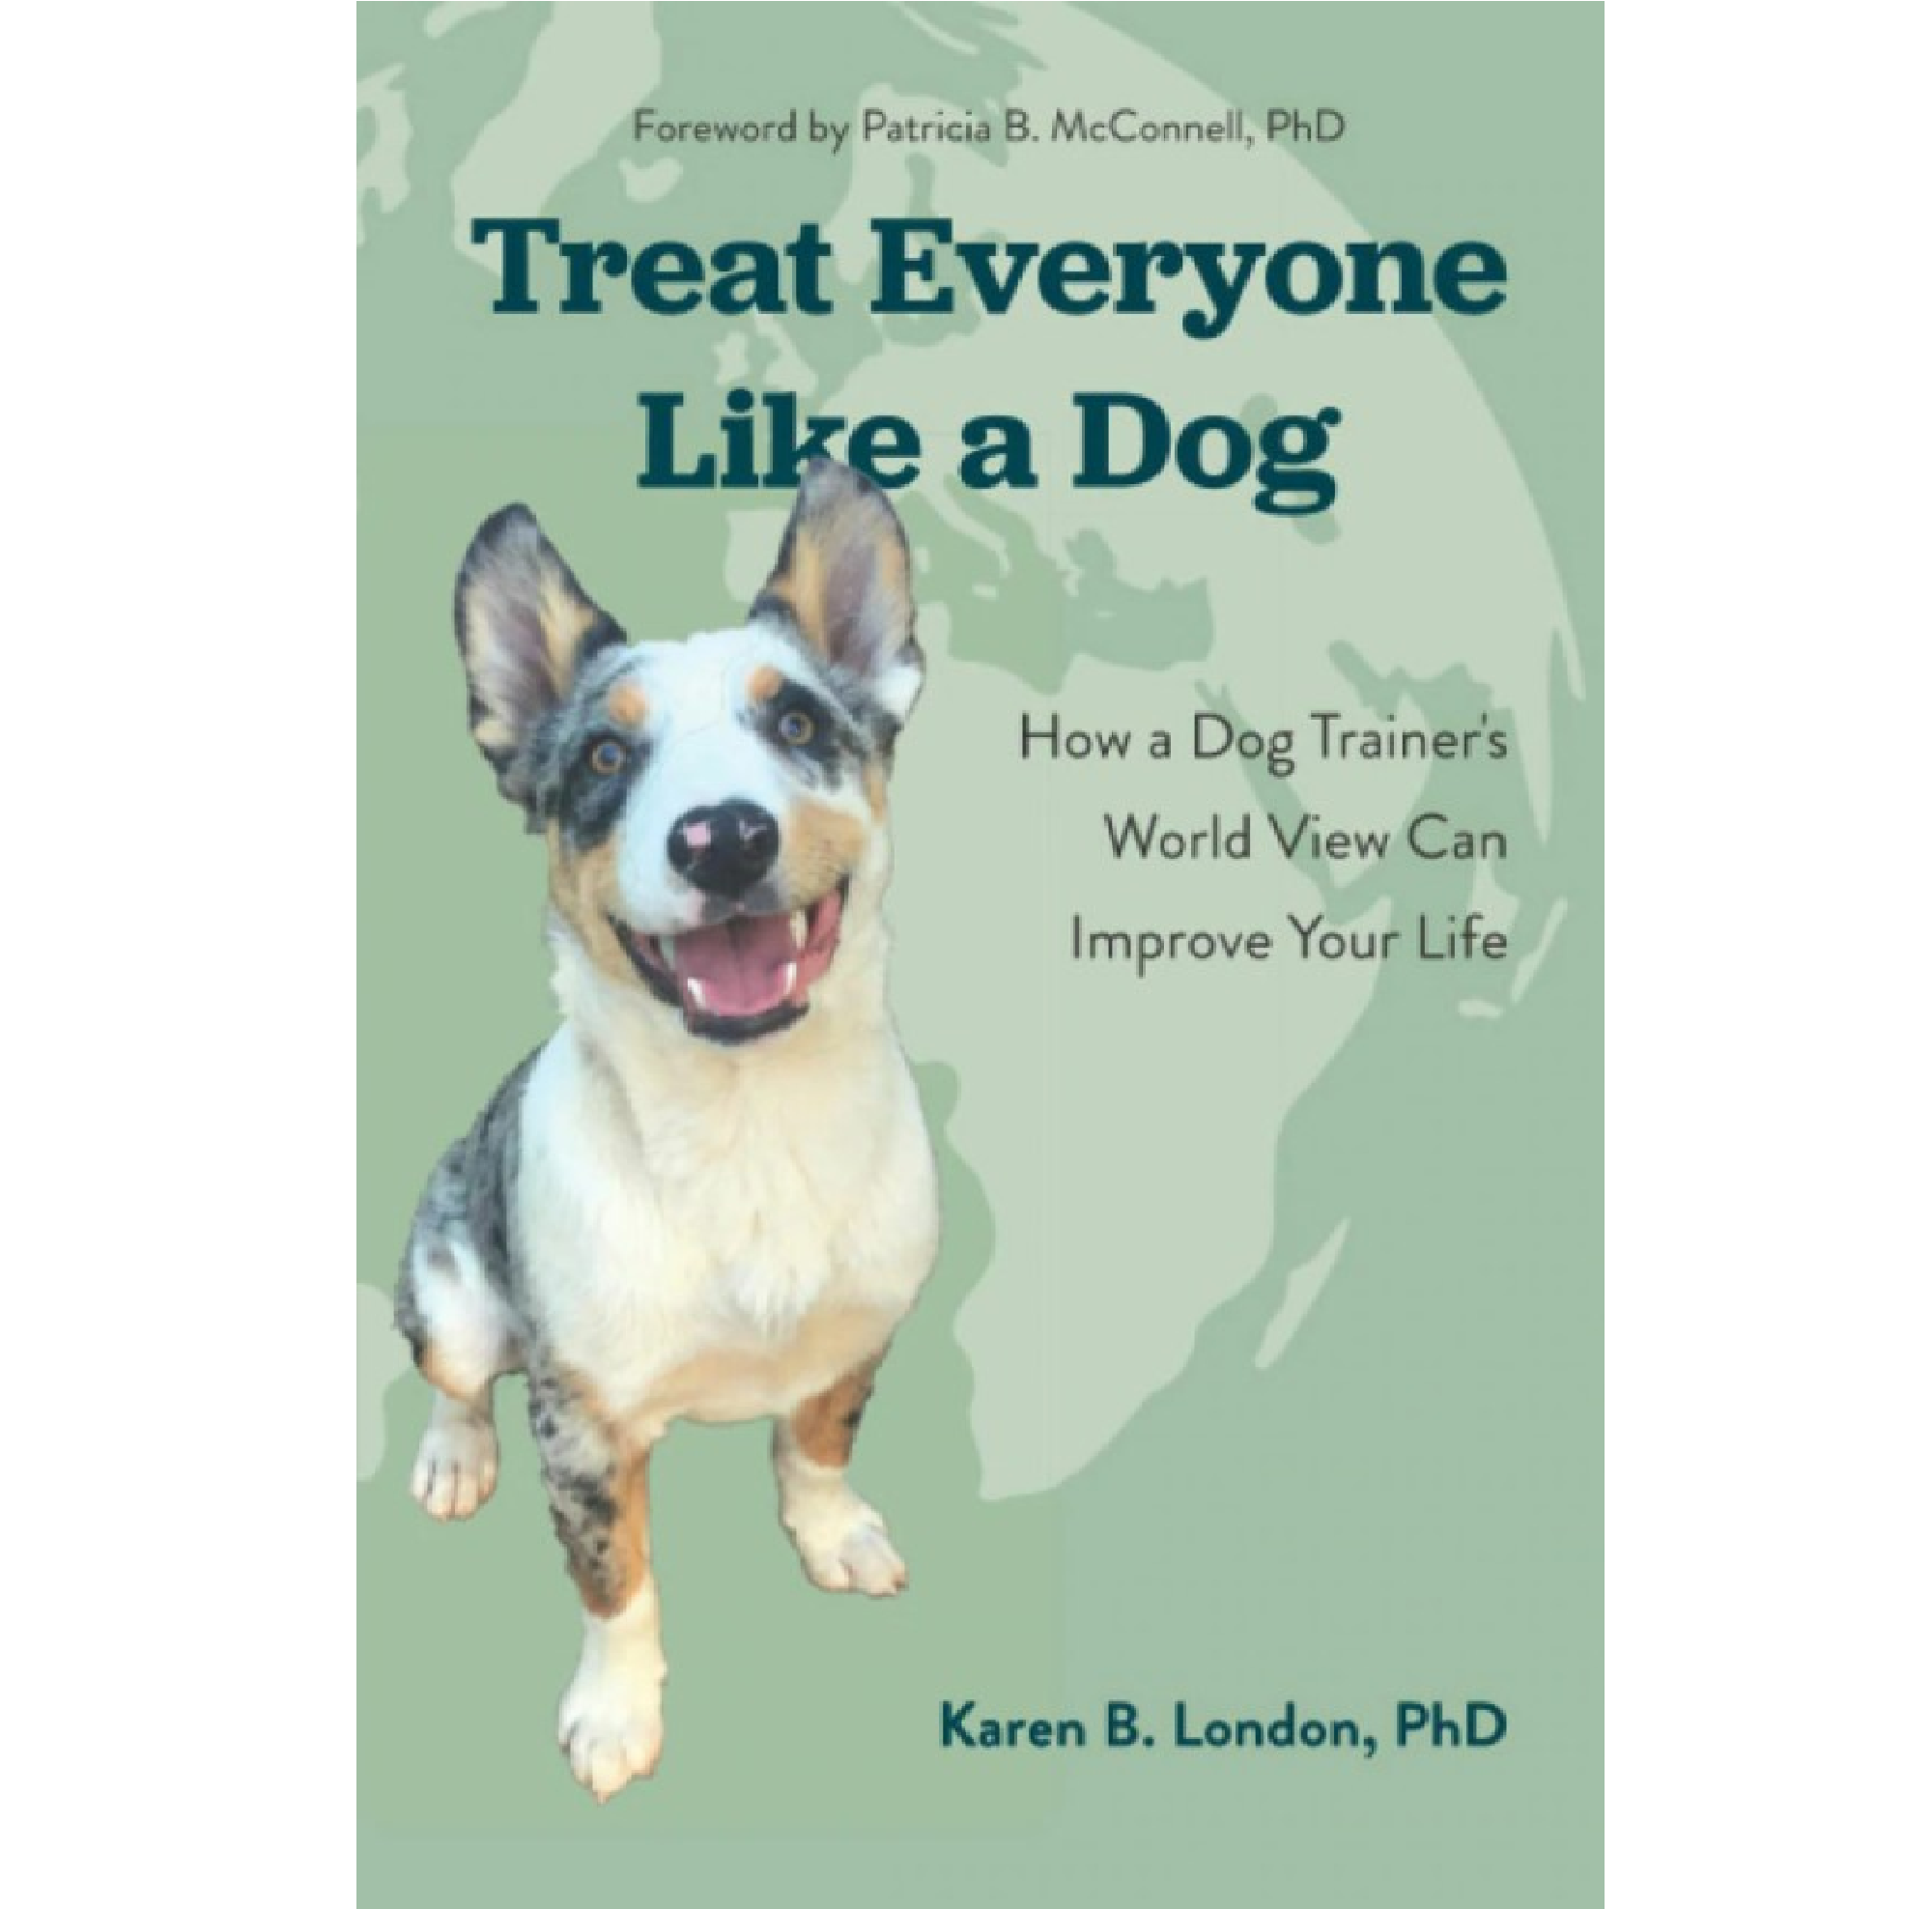 Treat Everyone Like a Dog: How a Dog Trainer's World View Can Improve Your Life